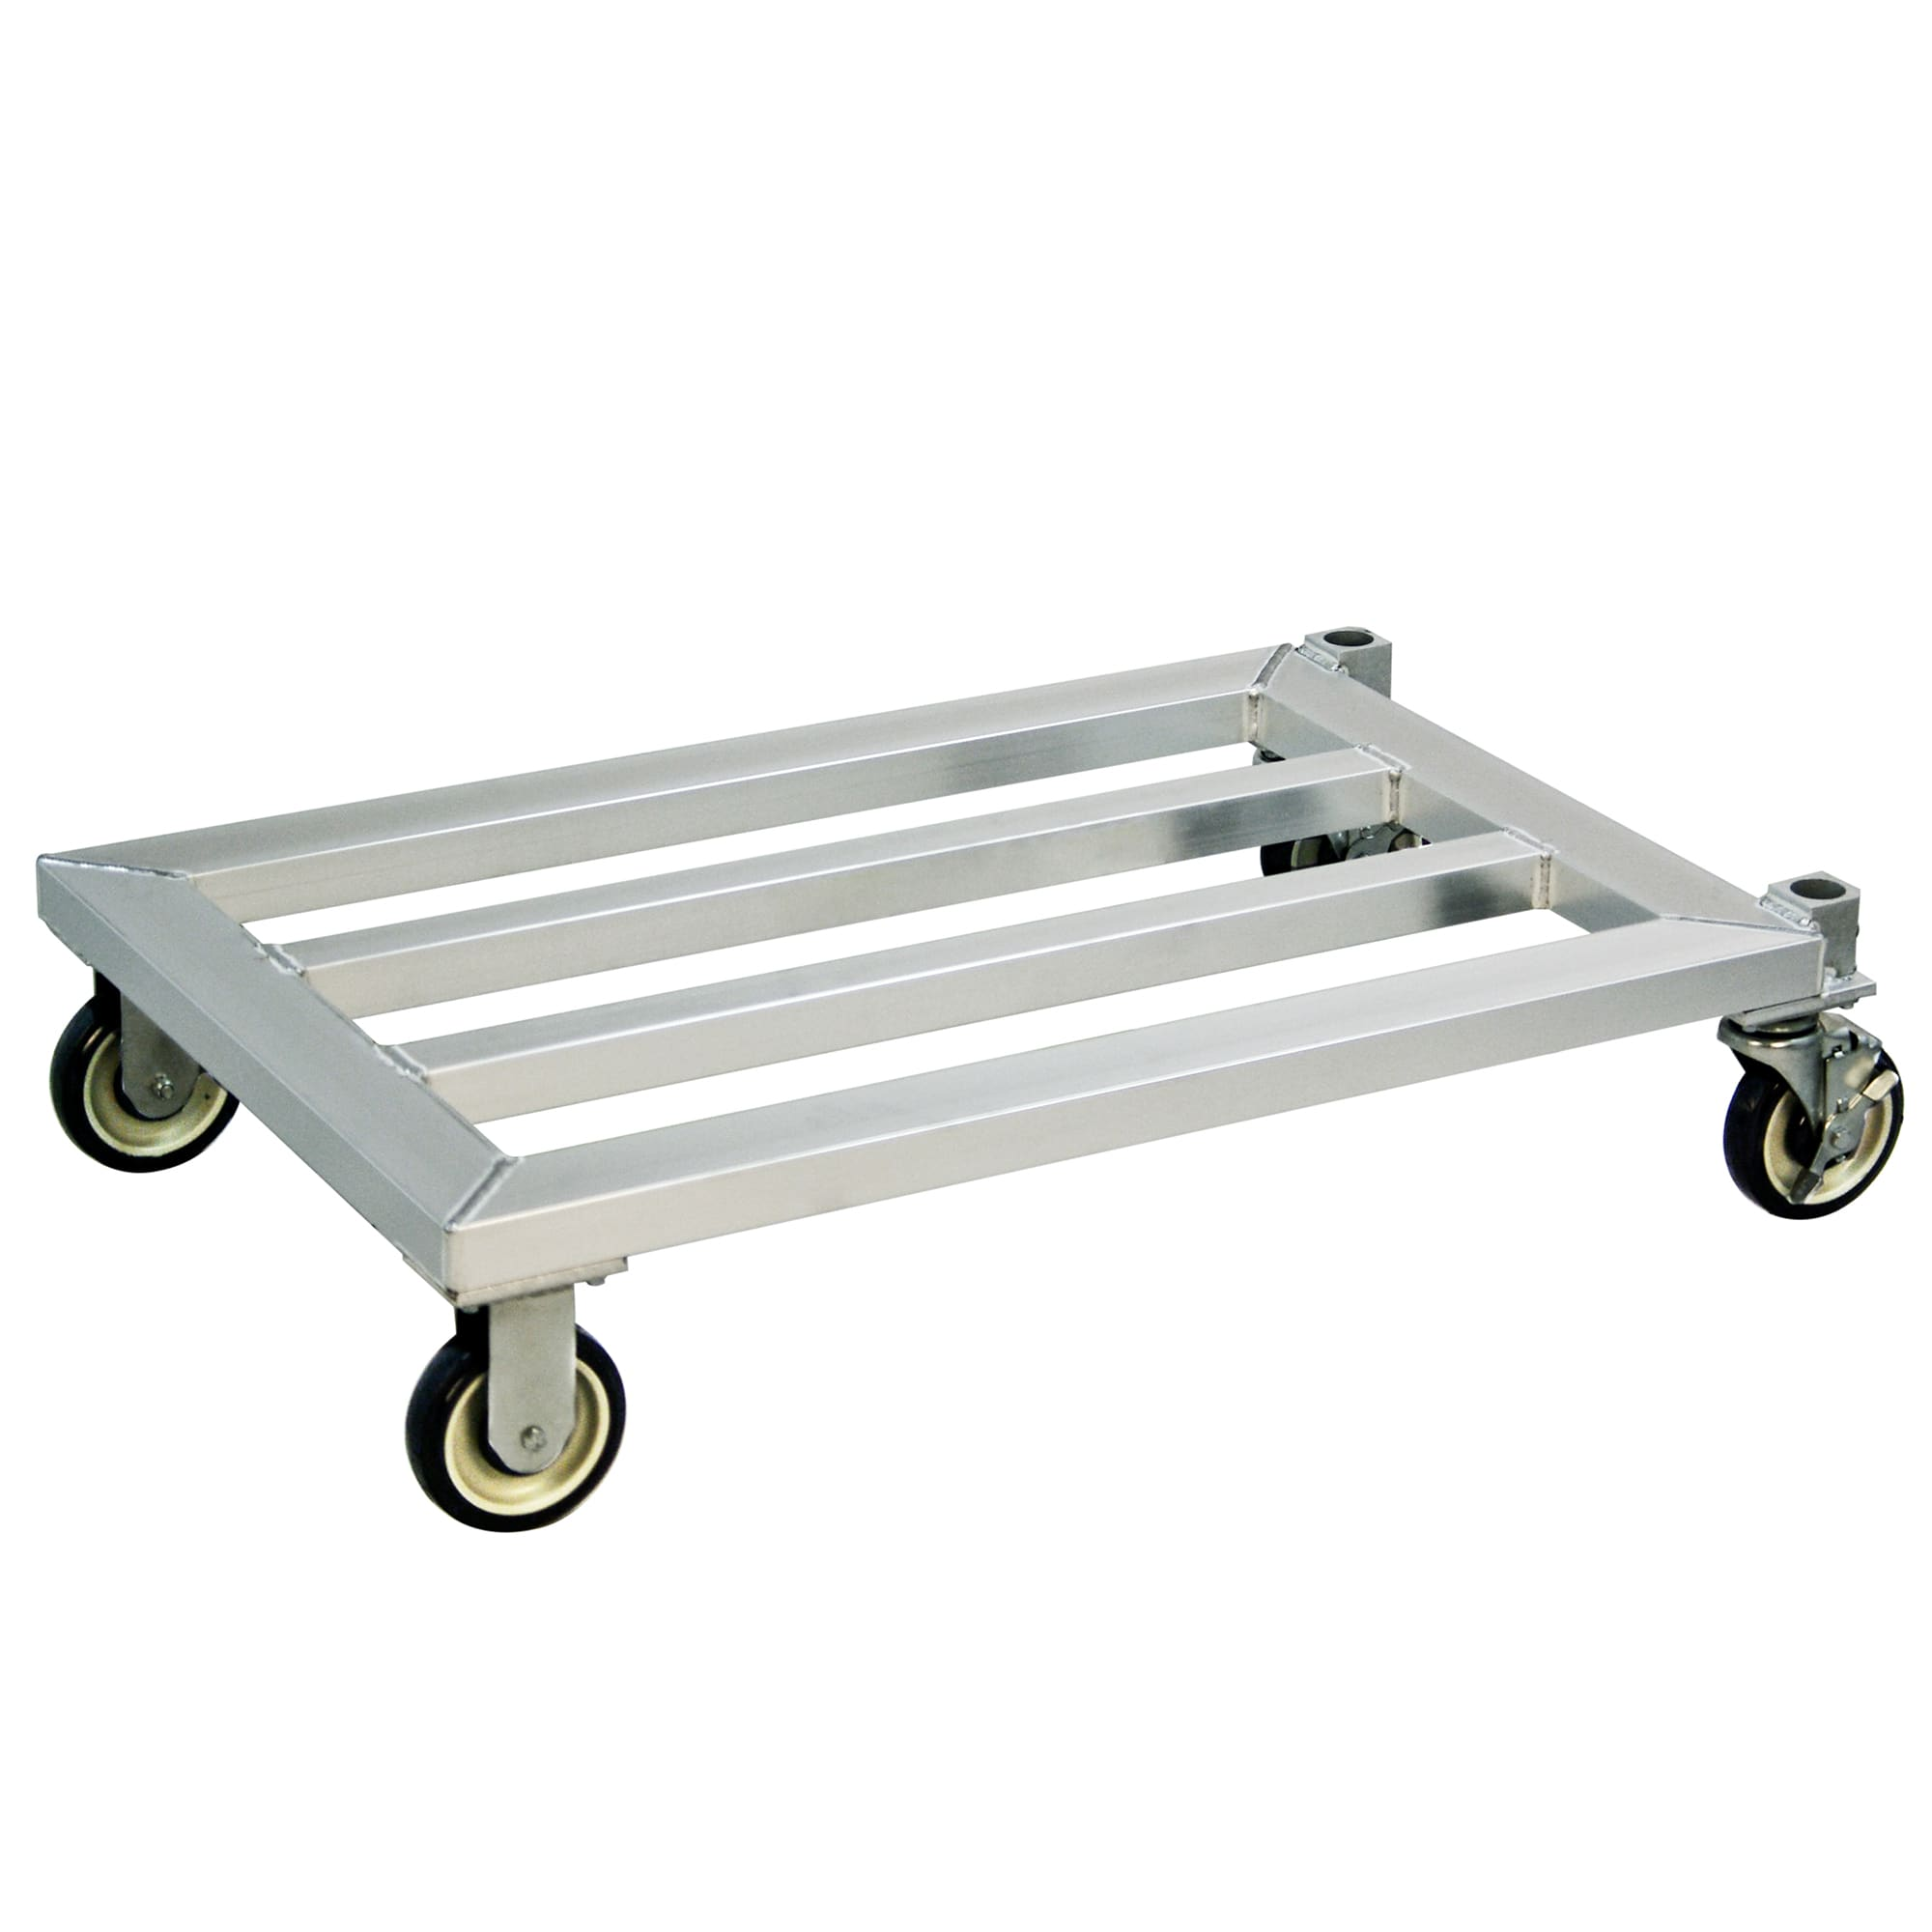 "New Age 1204 37.75"" Mobile Dunnage Rack w/ 1000-lb Capacity, Aluminum"